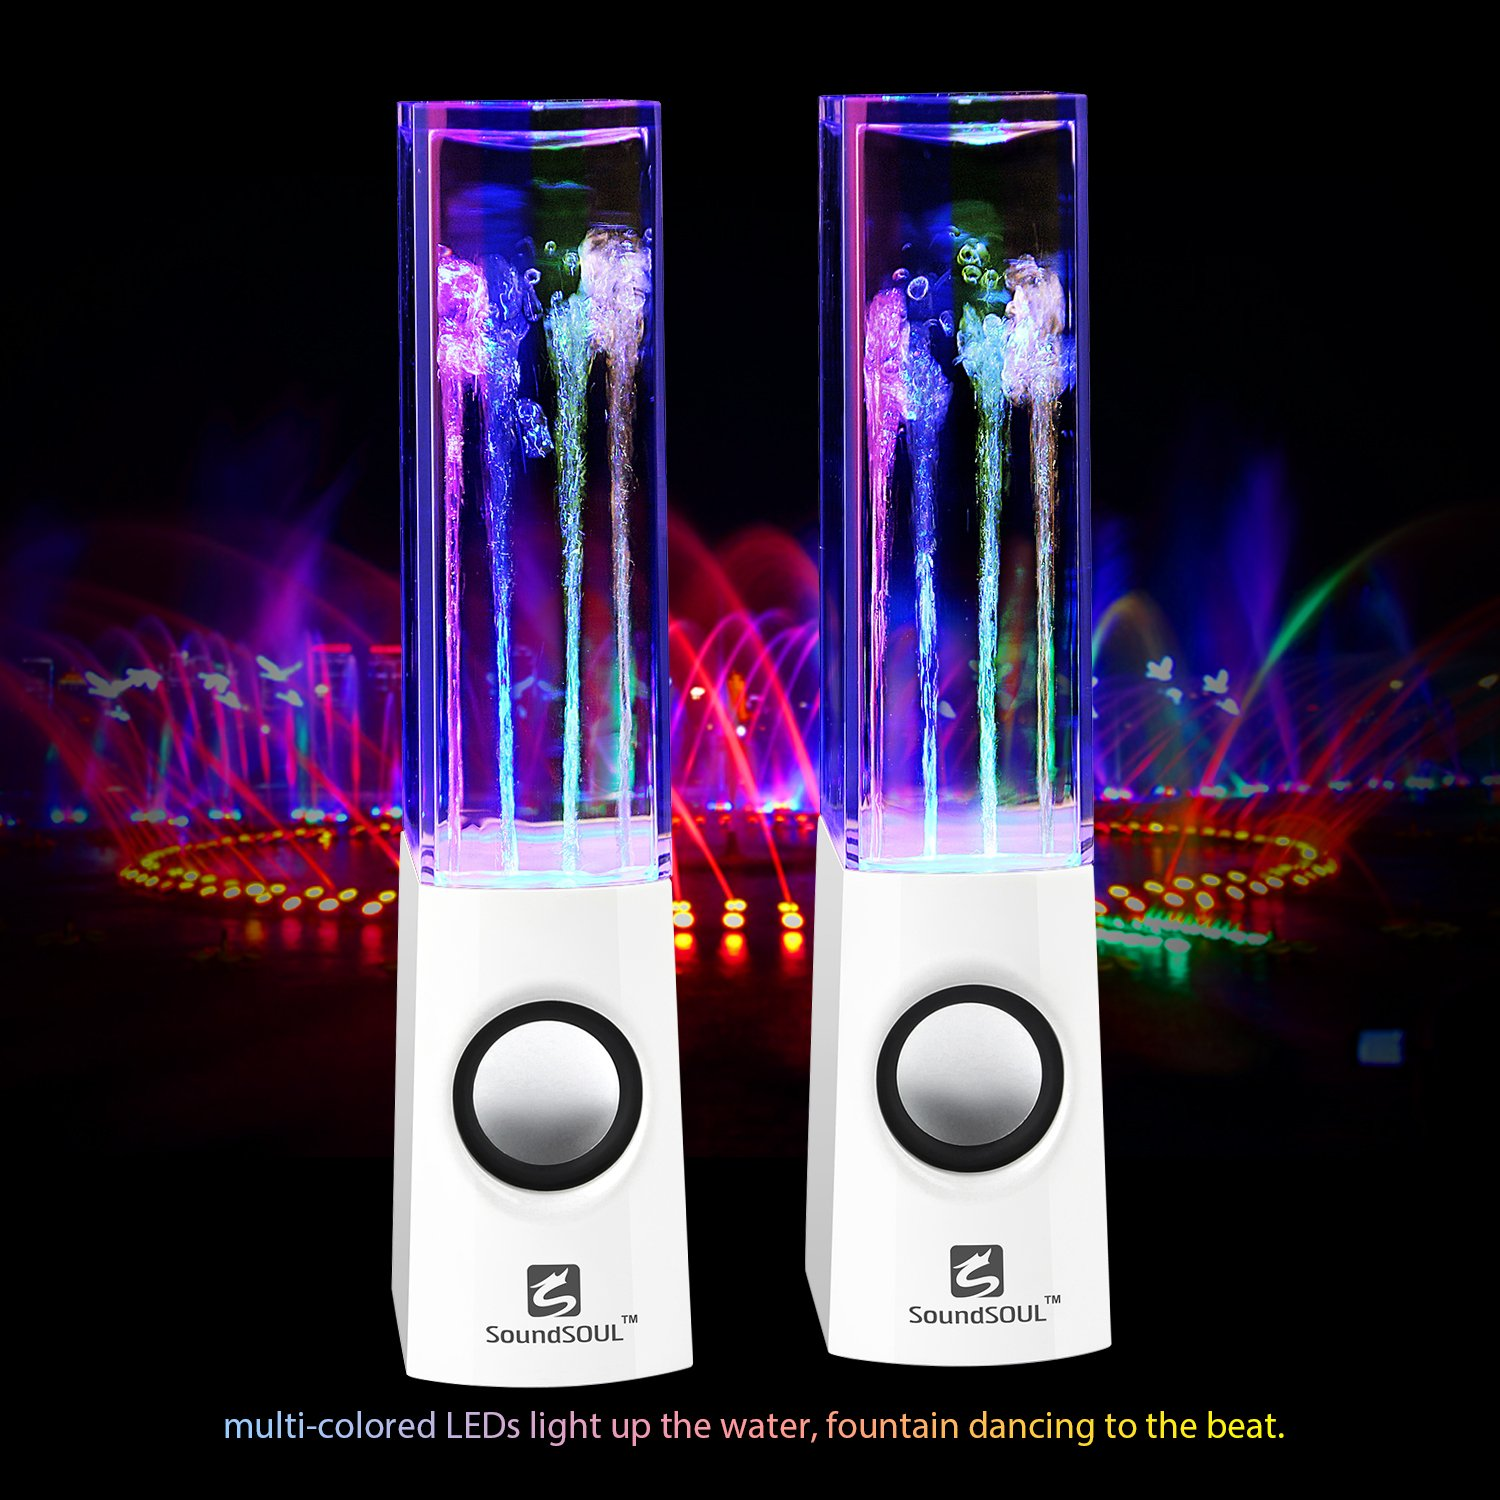 Soundsoul Water Dancing Speakers Light Show How To Build Leds Fountain Led 35mm Audio Plug 4 Colored Lights Portable